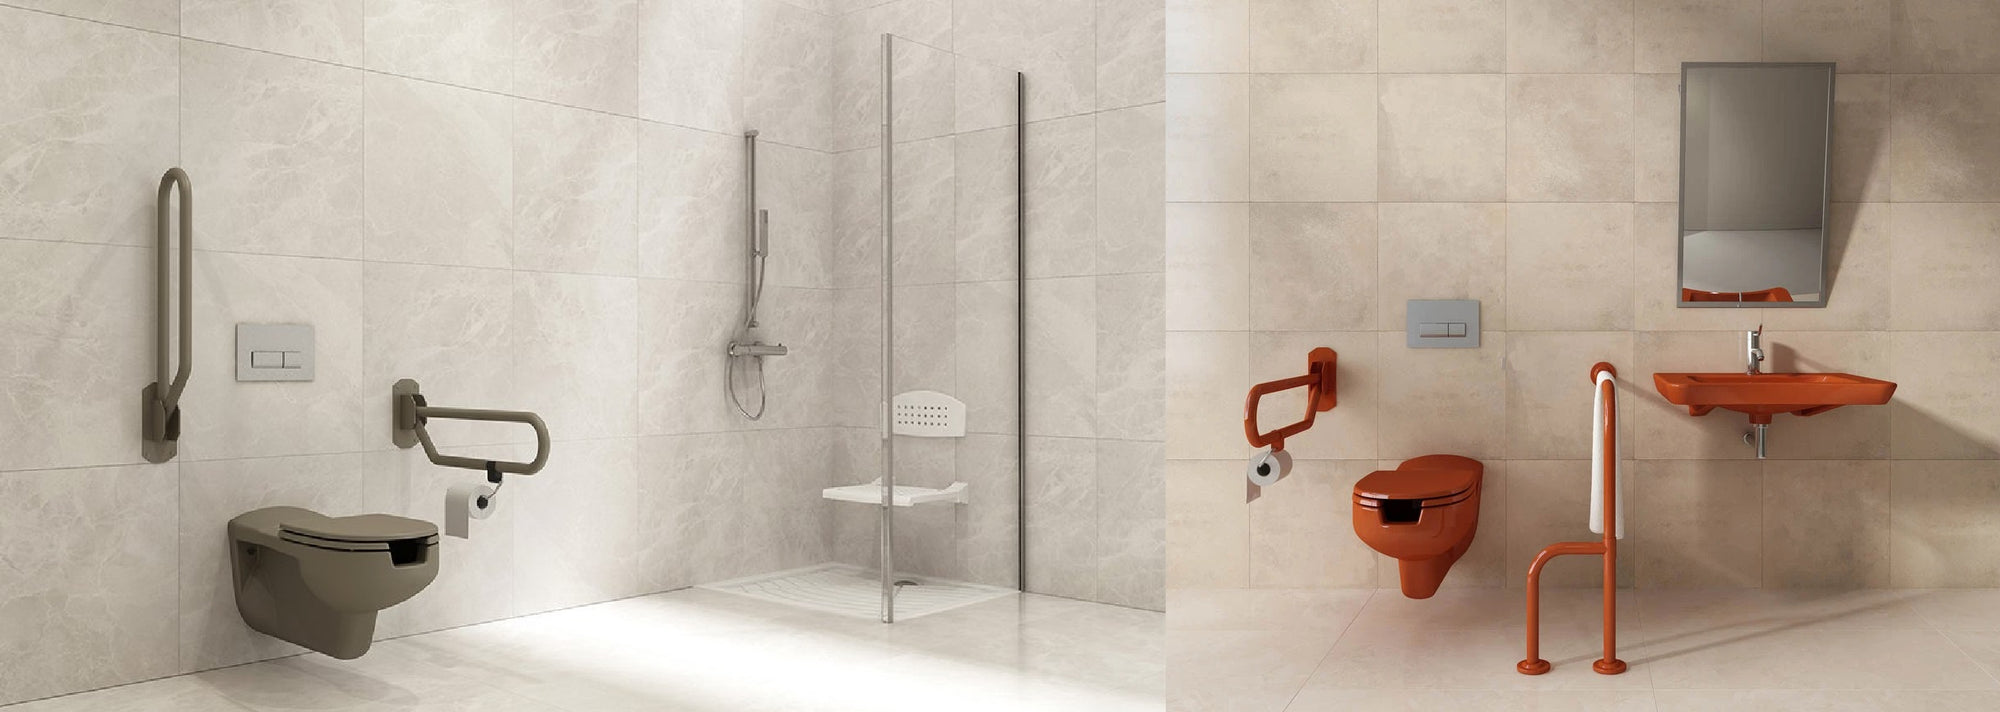 Bocchi Grab Bars providing safety and style with comfort and care